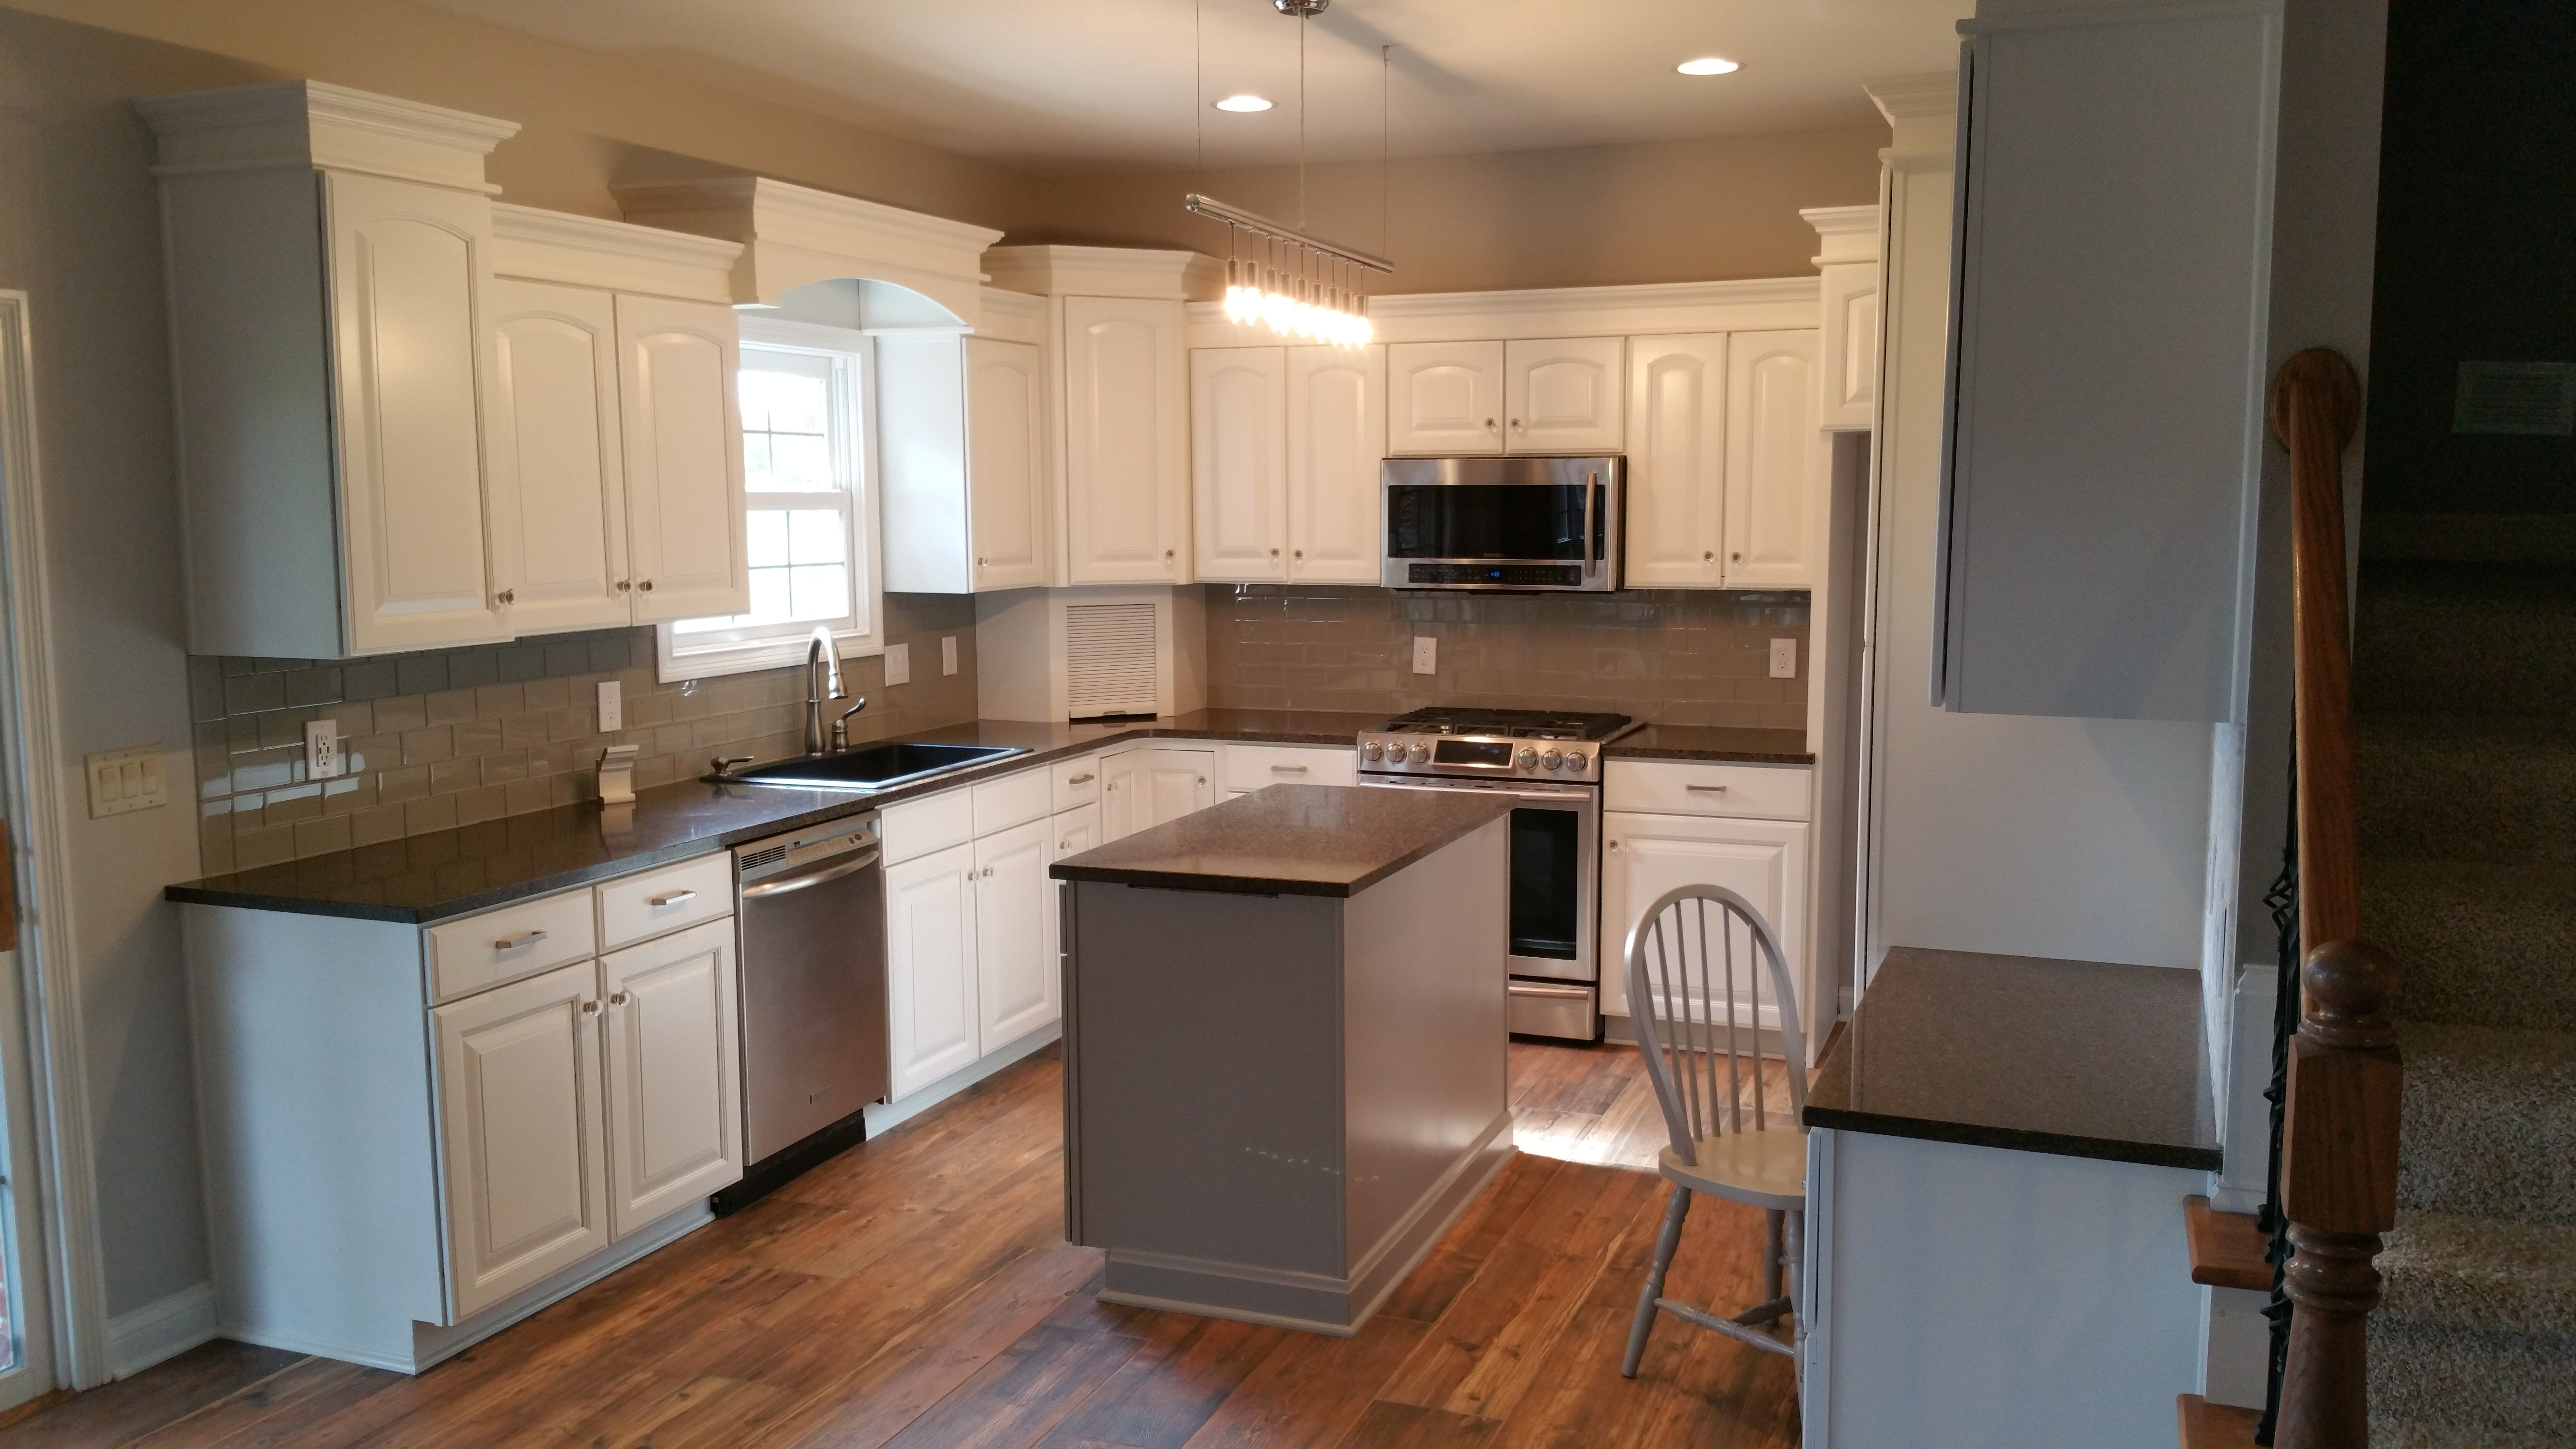 products to refinish kitchen cabinets